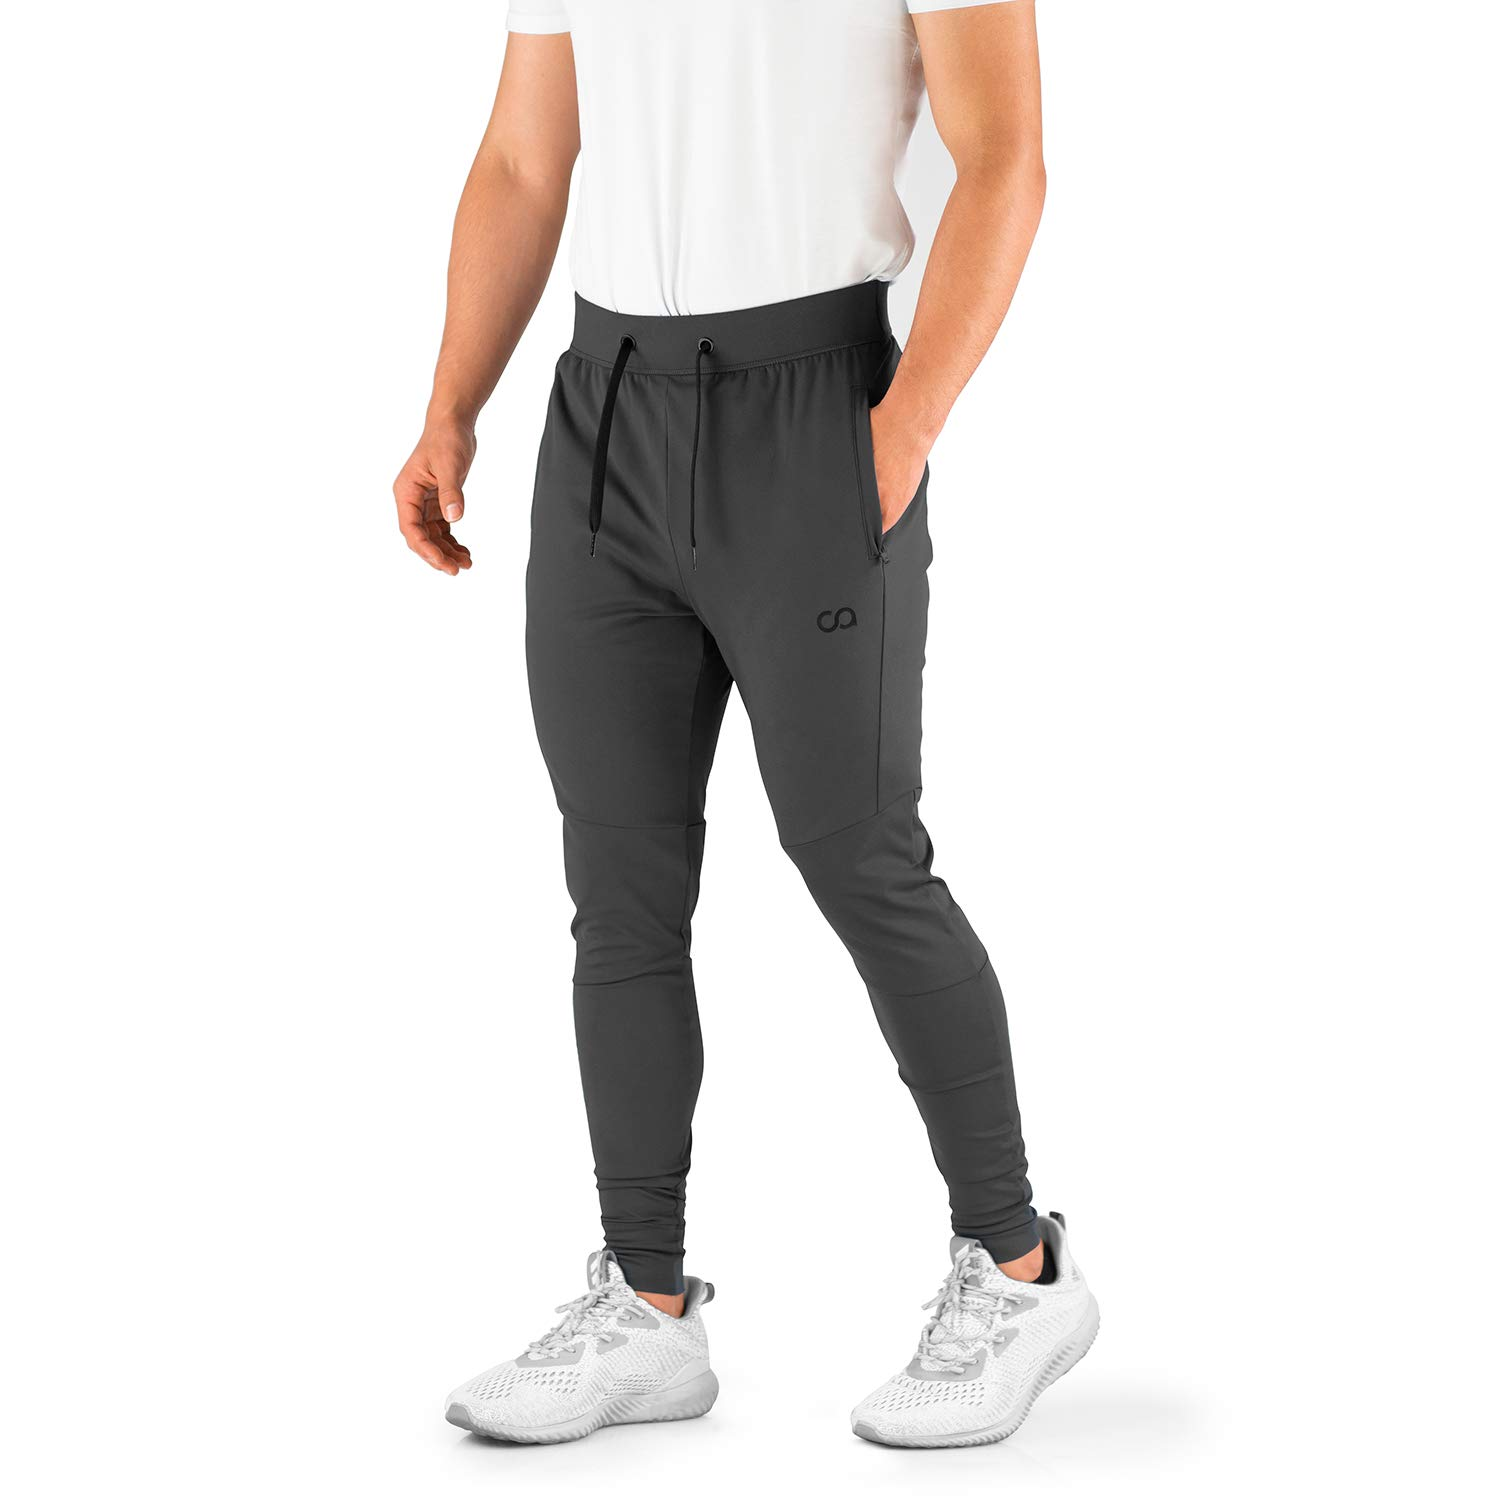 Contour Athletics Men's Joggers (HydraFit) Track Pants Sports Workout Sweatpants with Zipper and Back Pockets CA0003-SG Grey